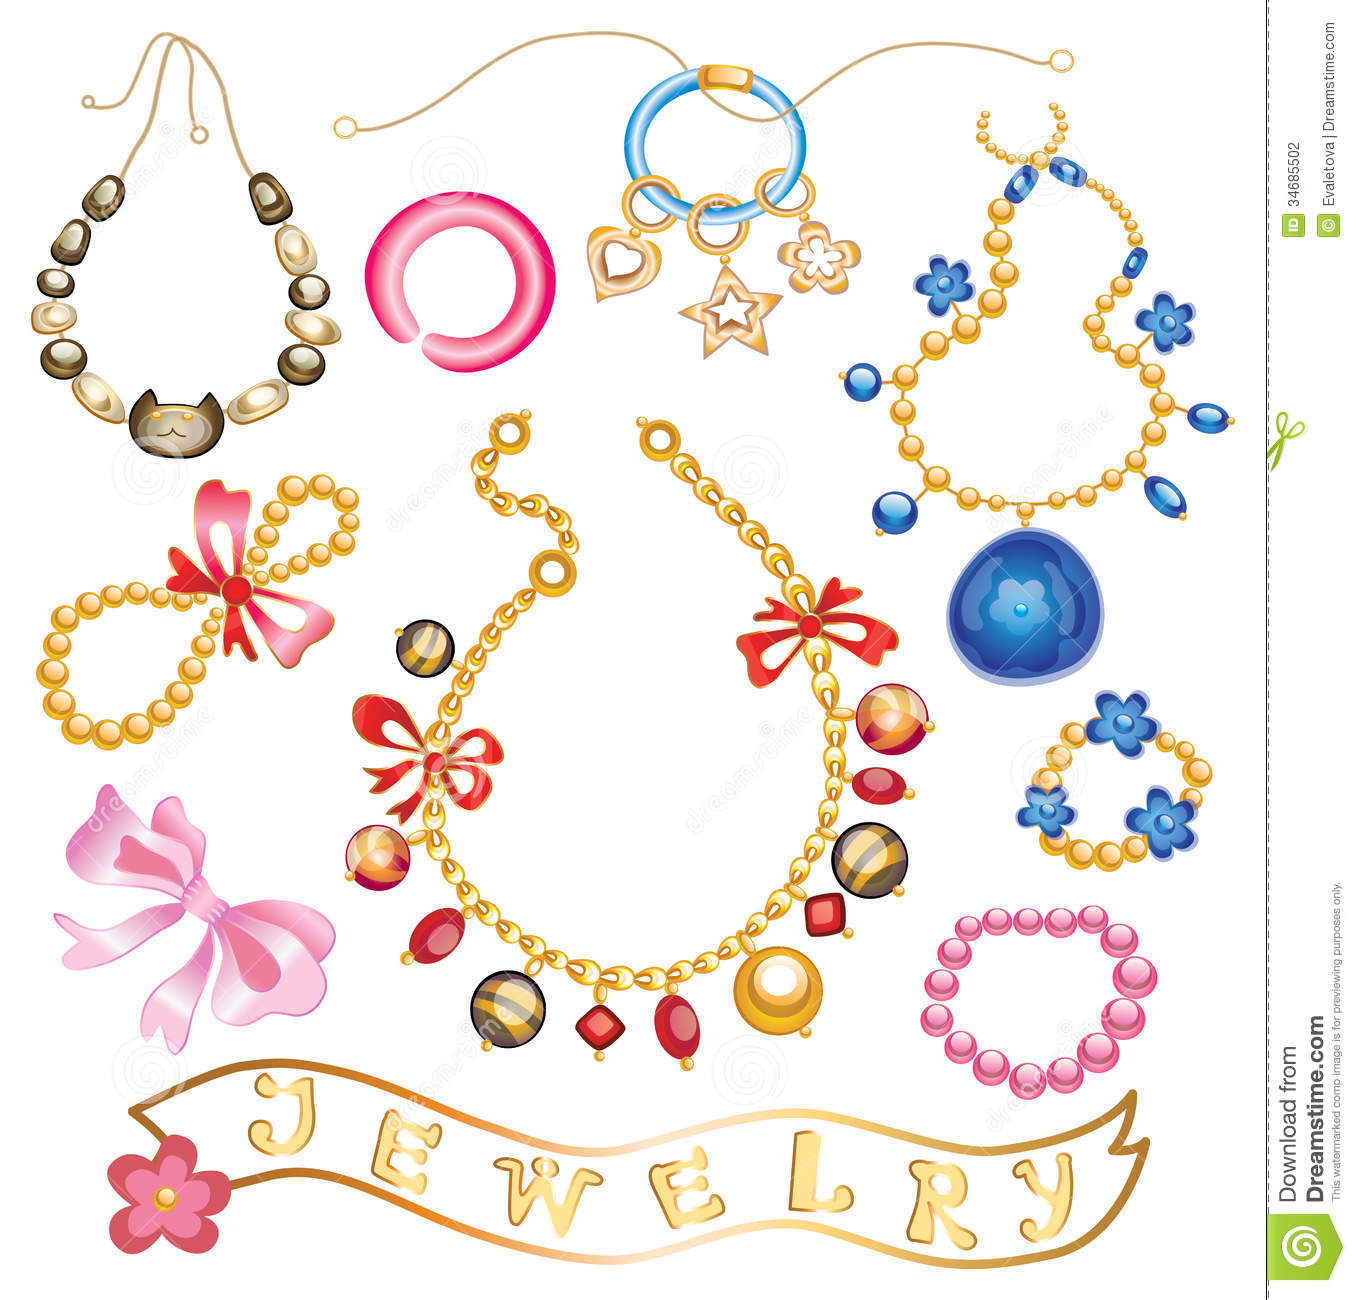 Jewelry clipart Jewelry Clipart Savoronmorehead Collection clipart